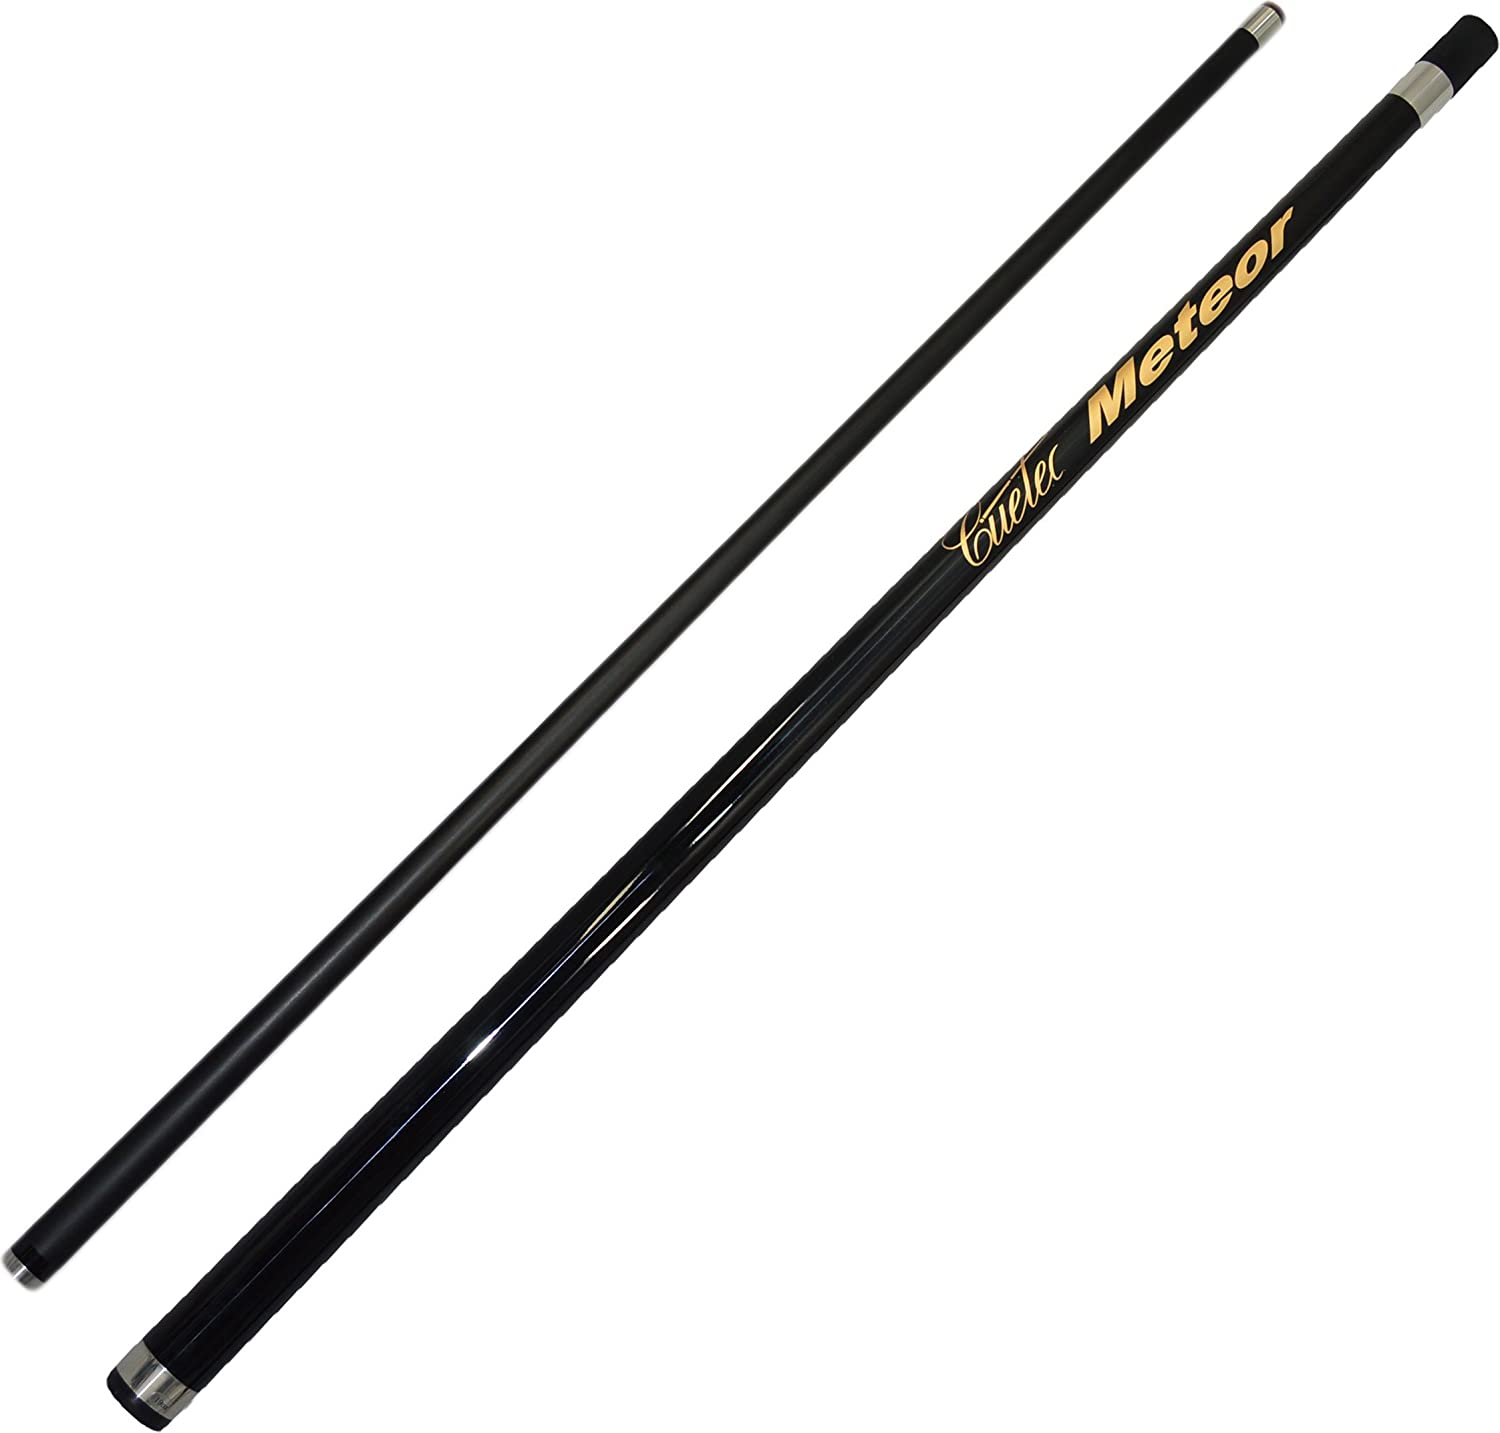 Cuetec Meteor Break Billiard Cue Imperial International 13-681